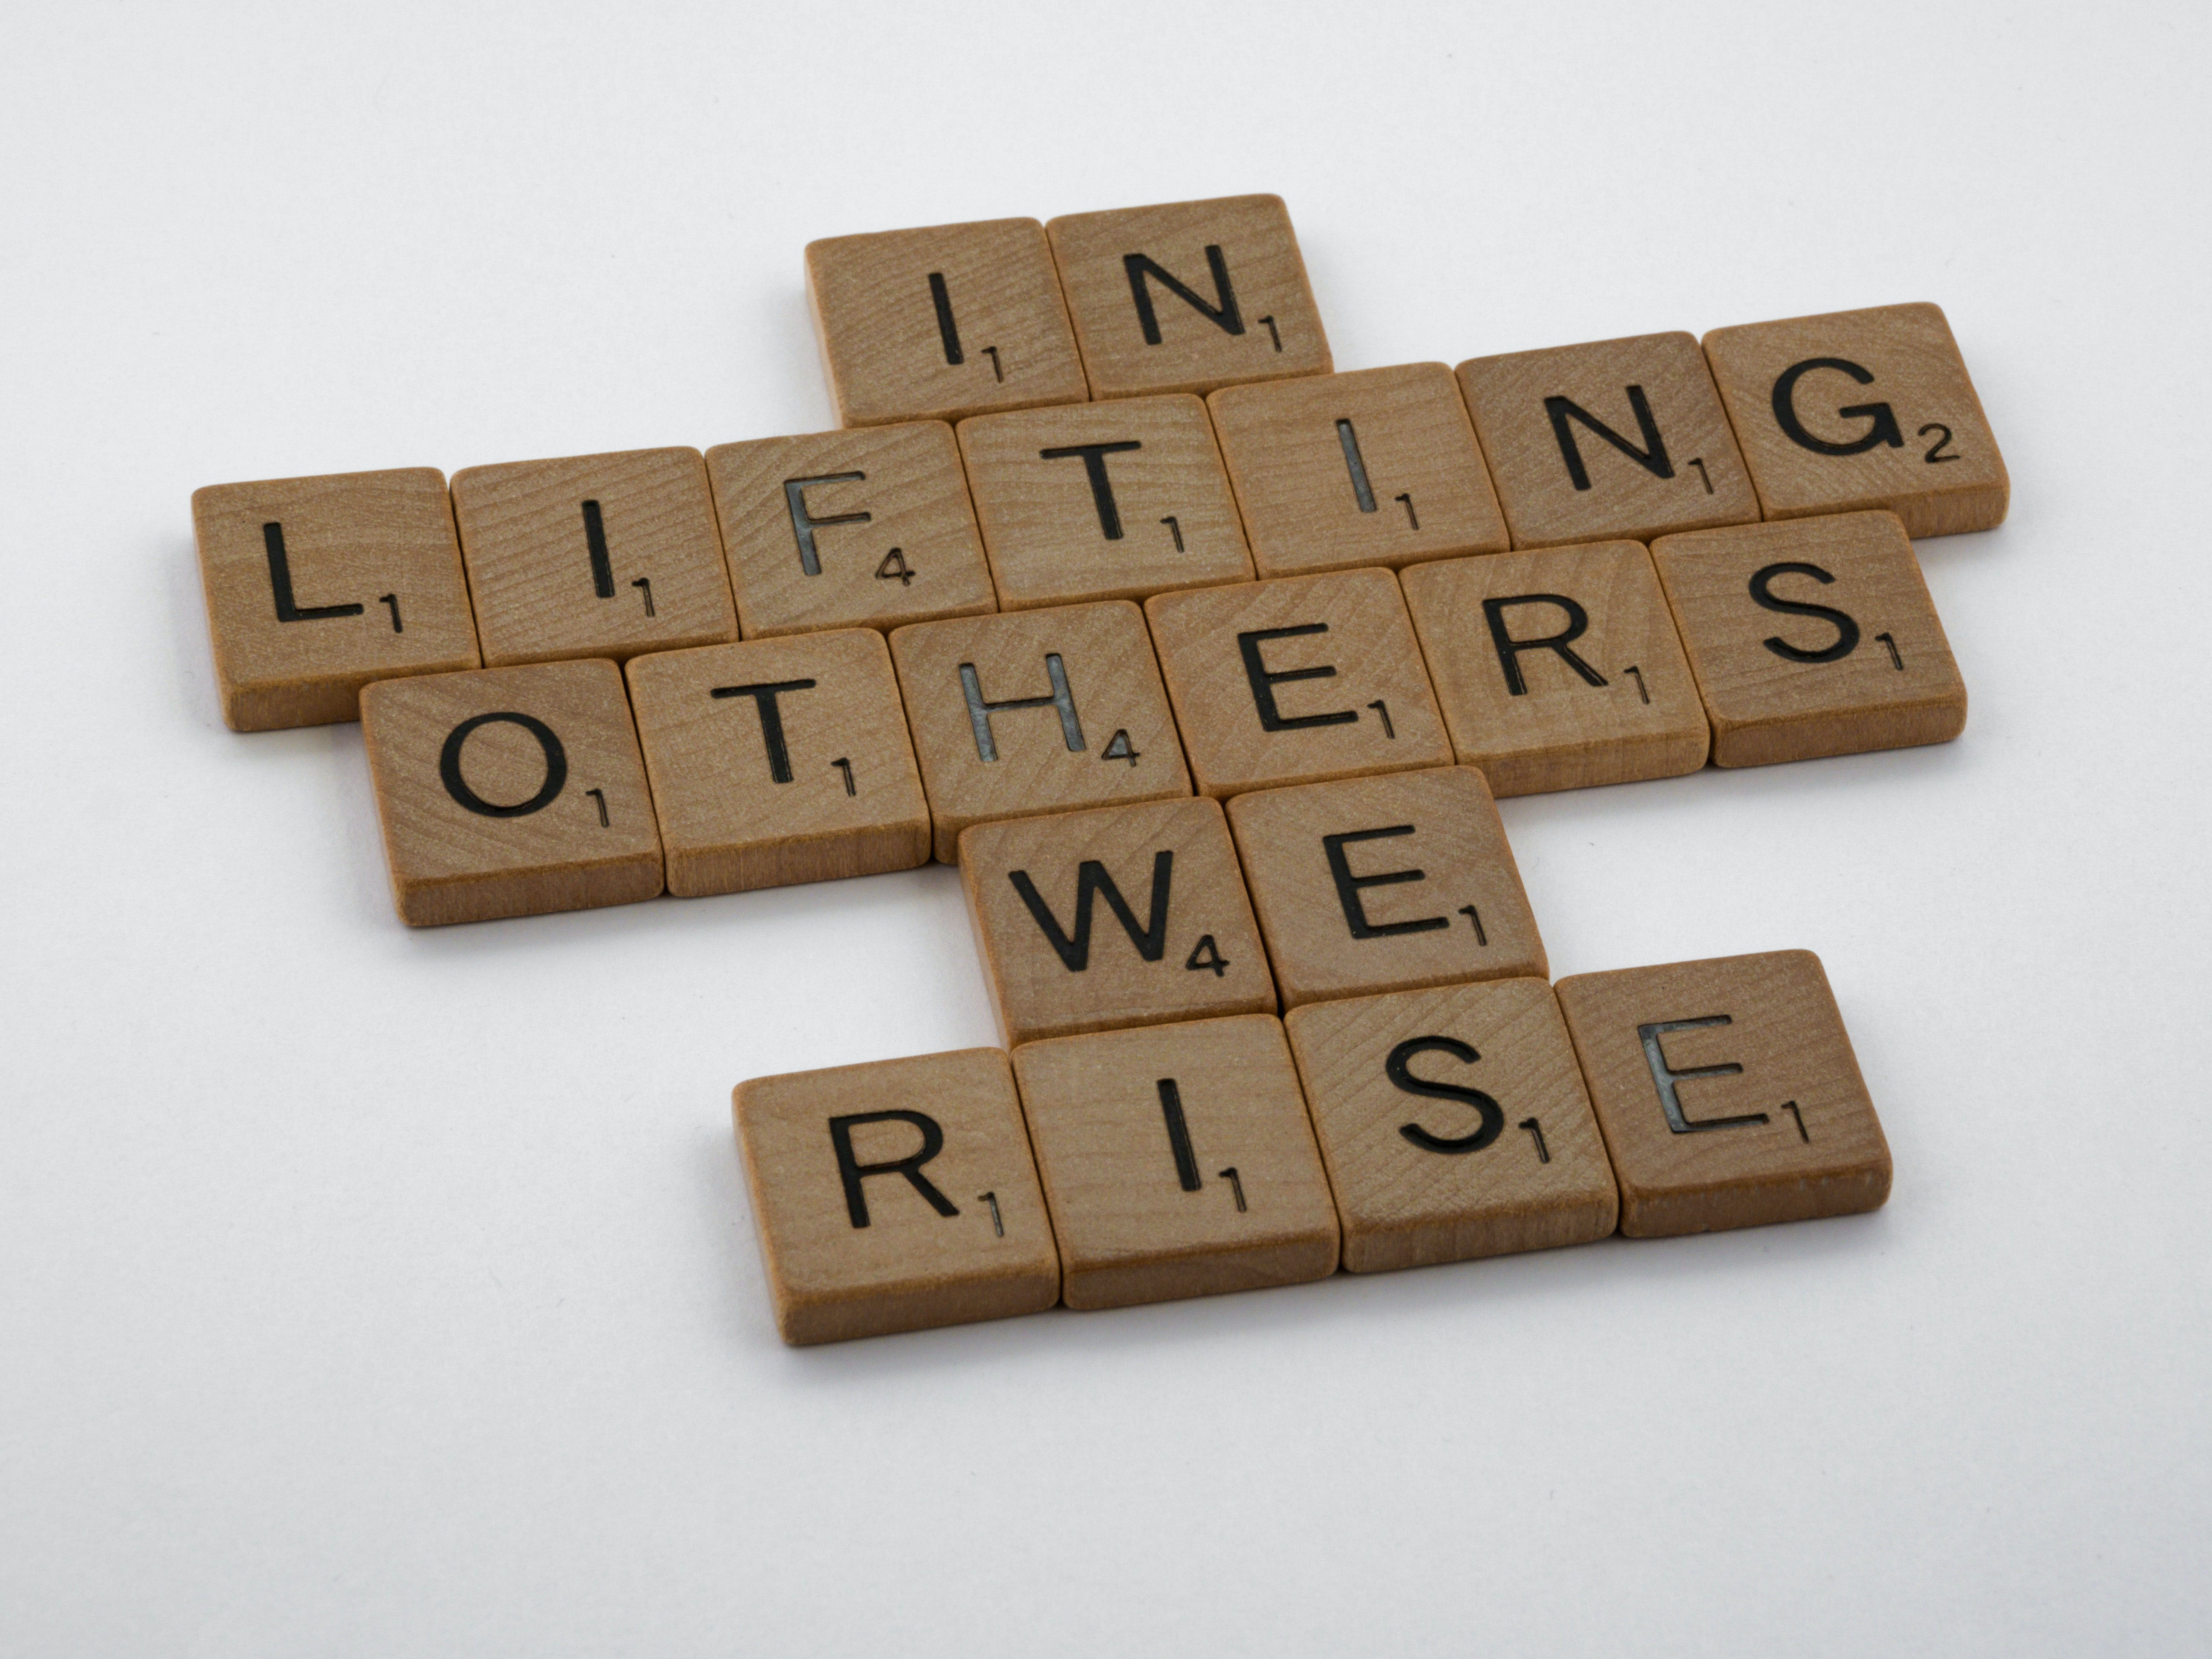 Scrabble chips that say in lifting others we rise